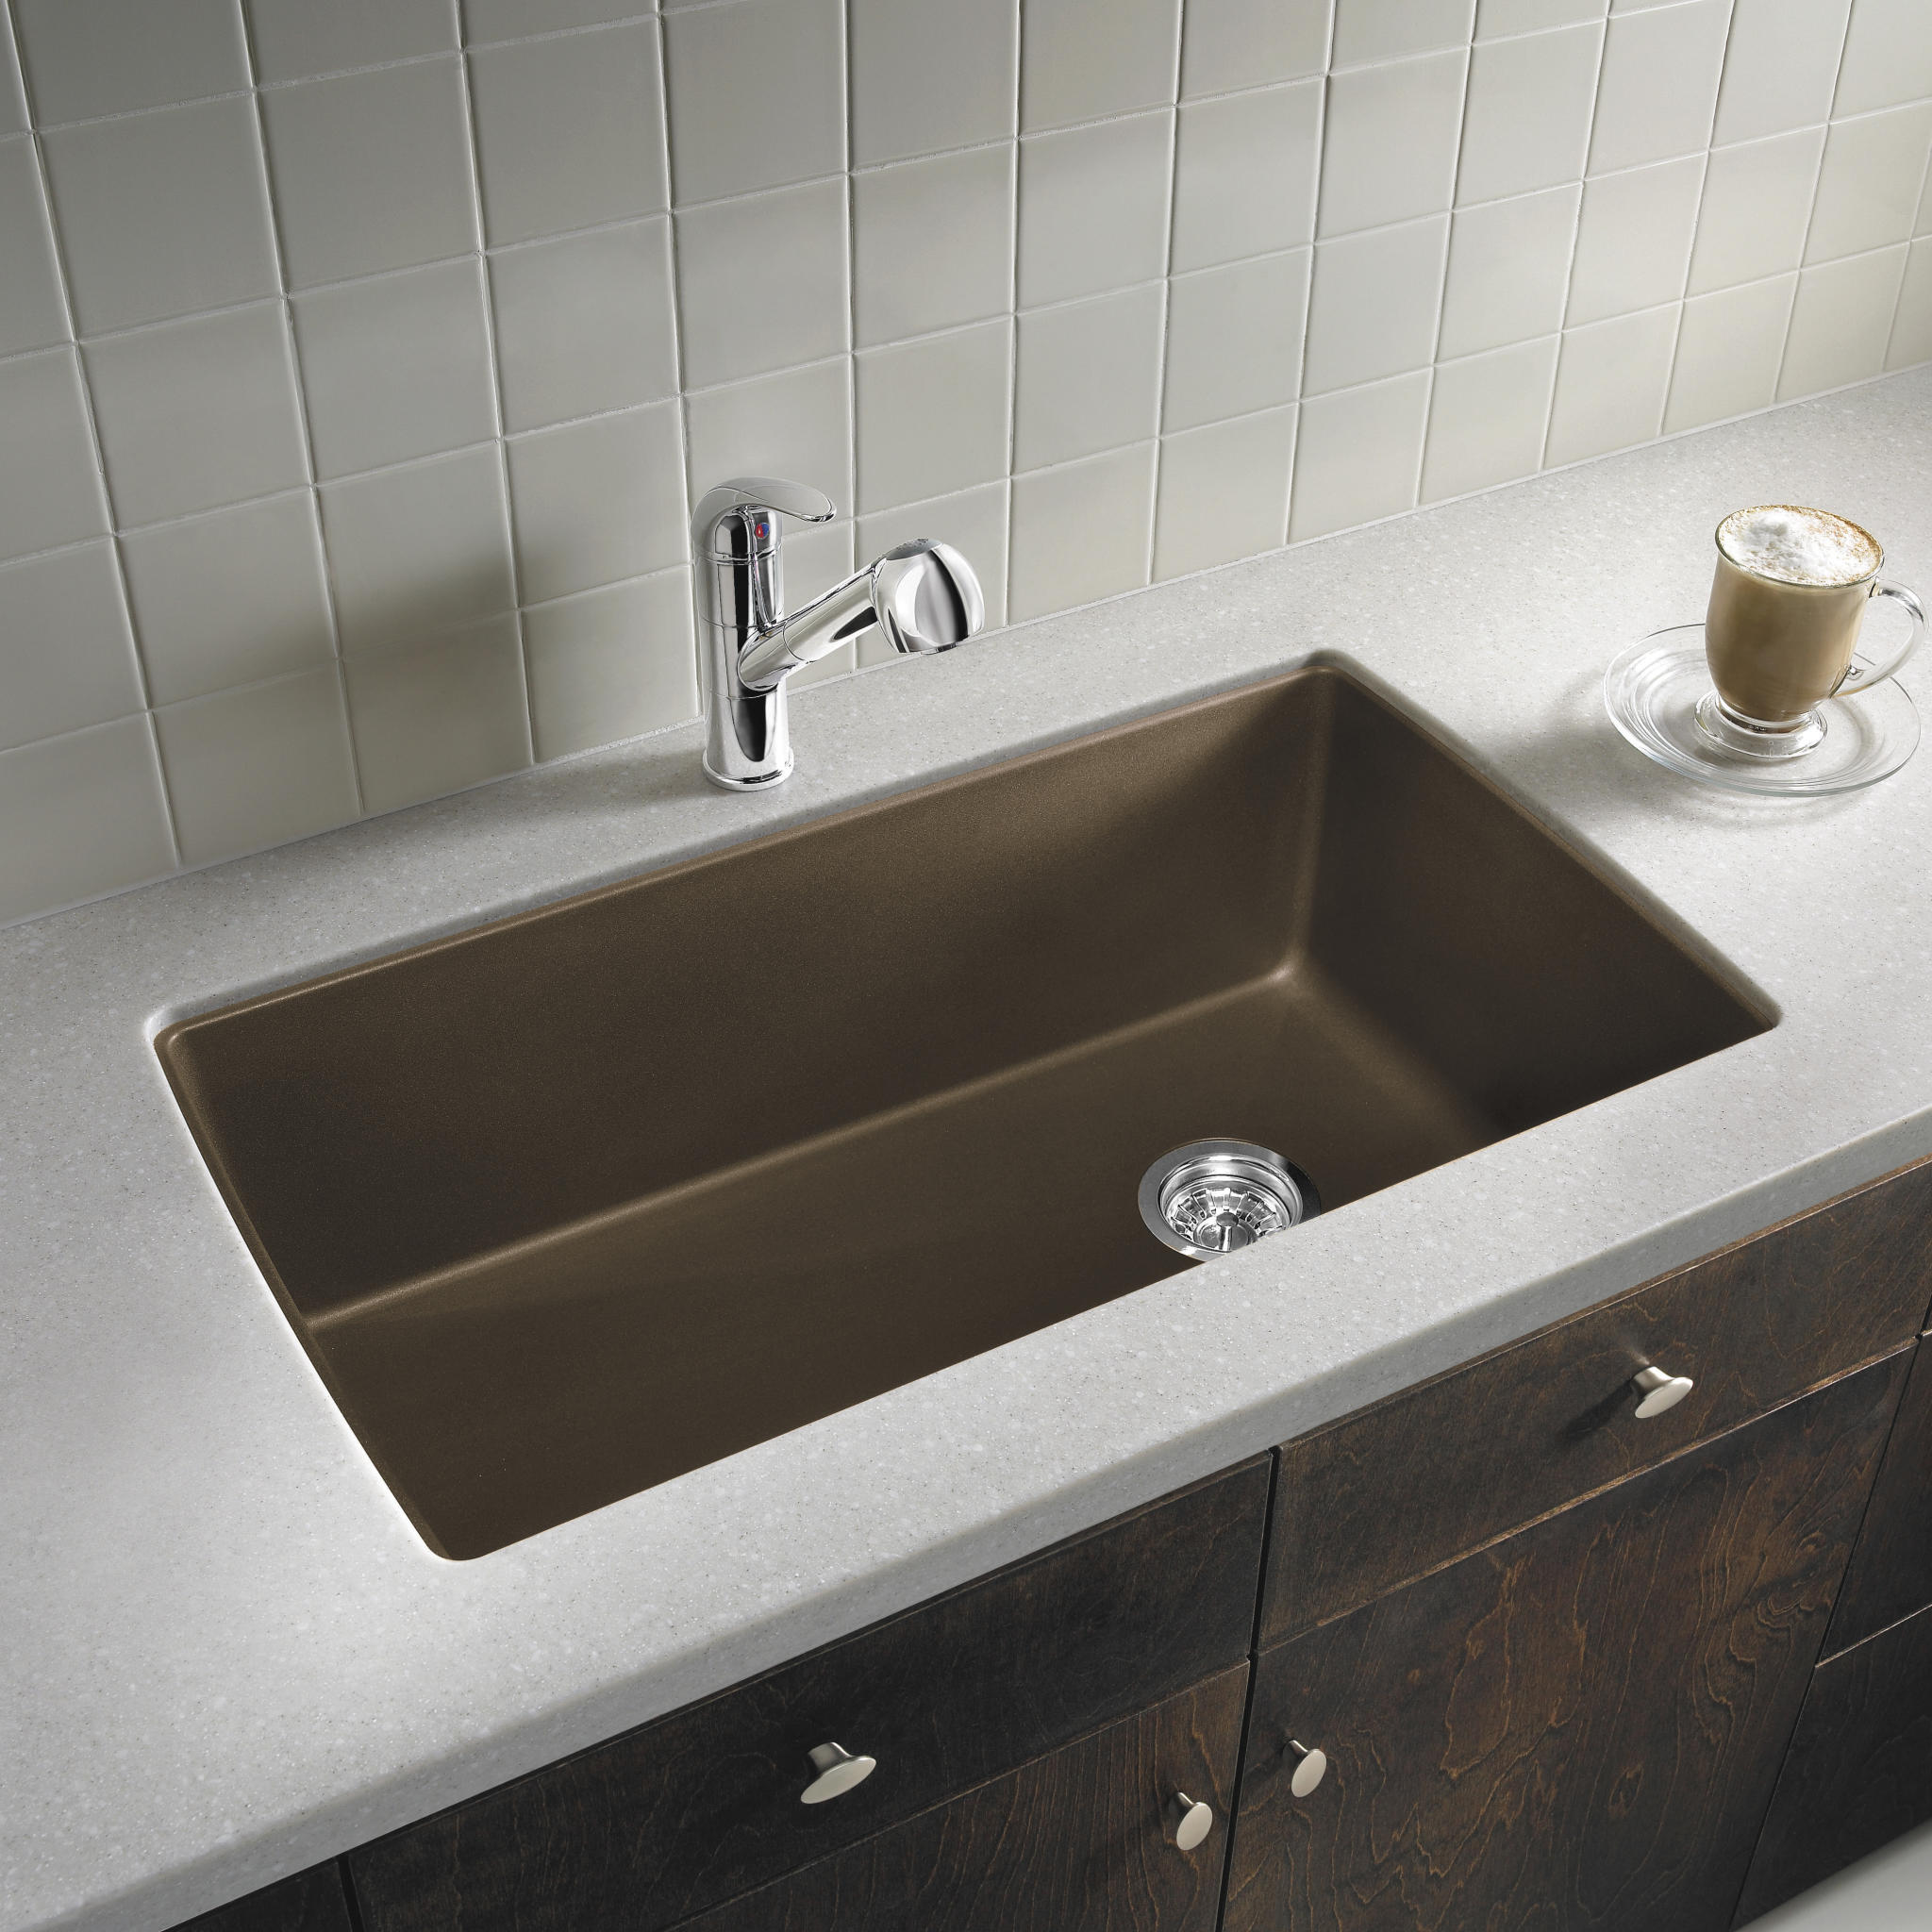 whats right sink size kitchen standard kitchen sink size Blanco 32 1 2 Diamond Super Single Bowl Sink Standard kitchen